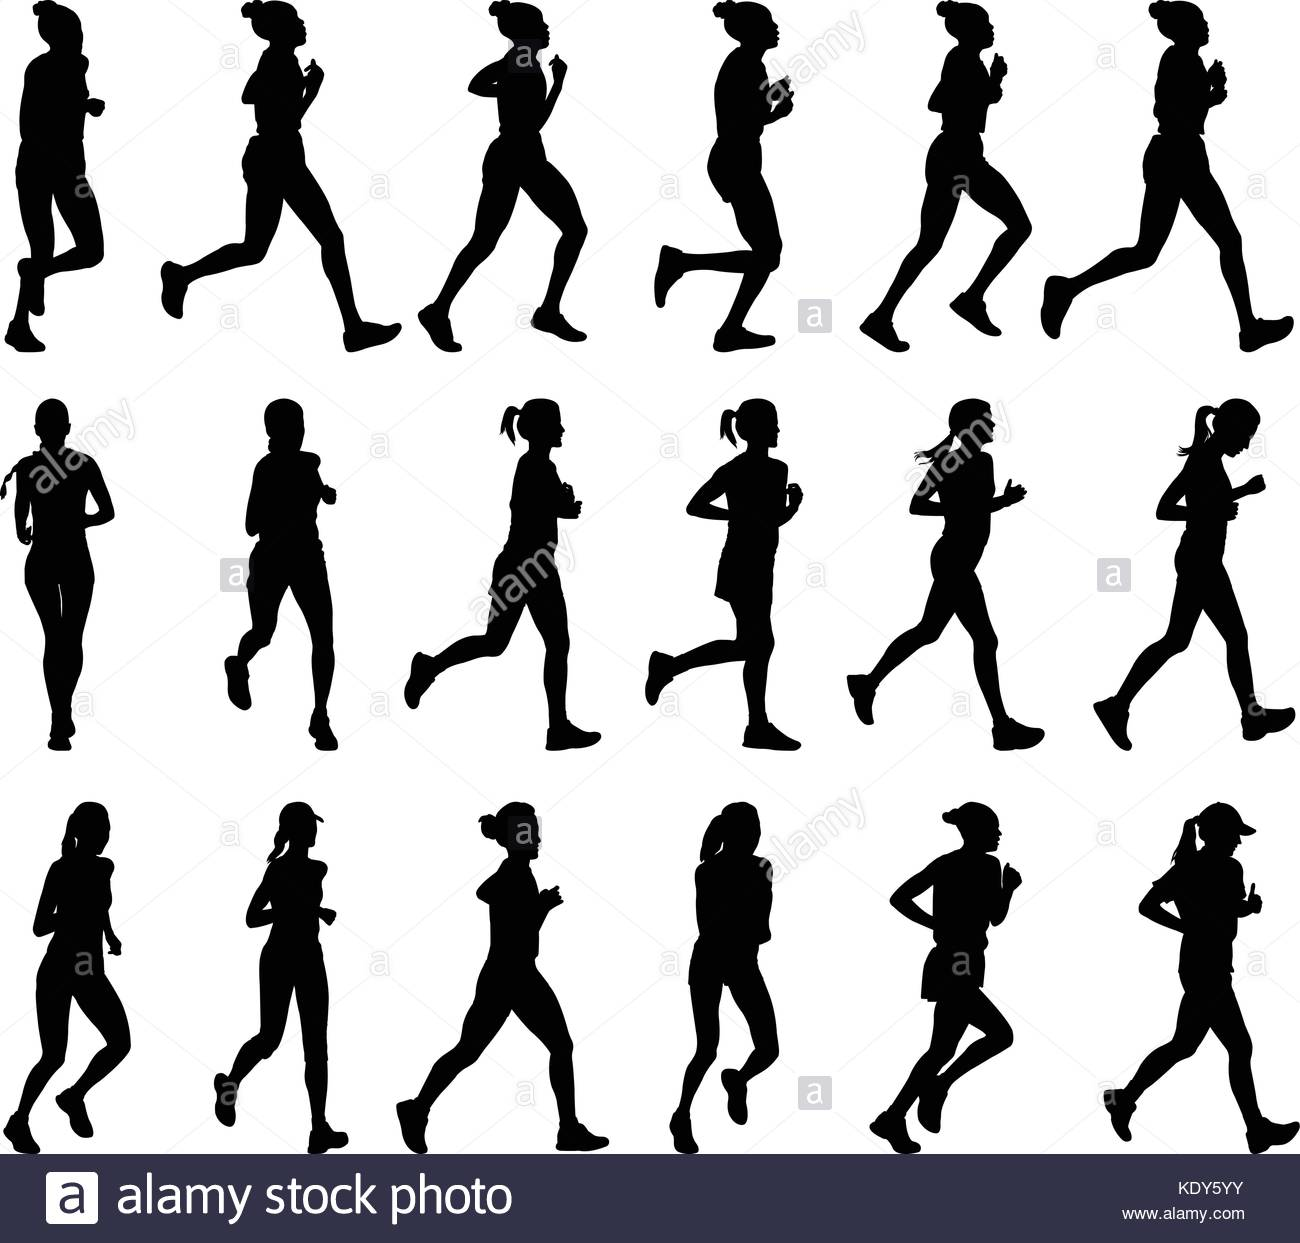 1300x1243 Marathon Runners Black And White Stock Photos Amp Images